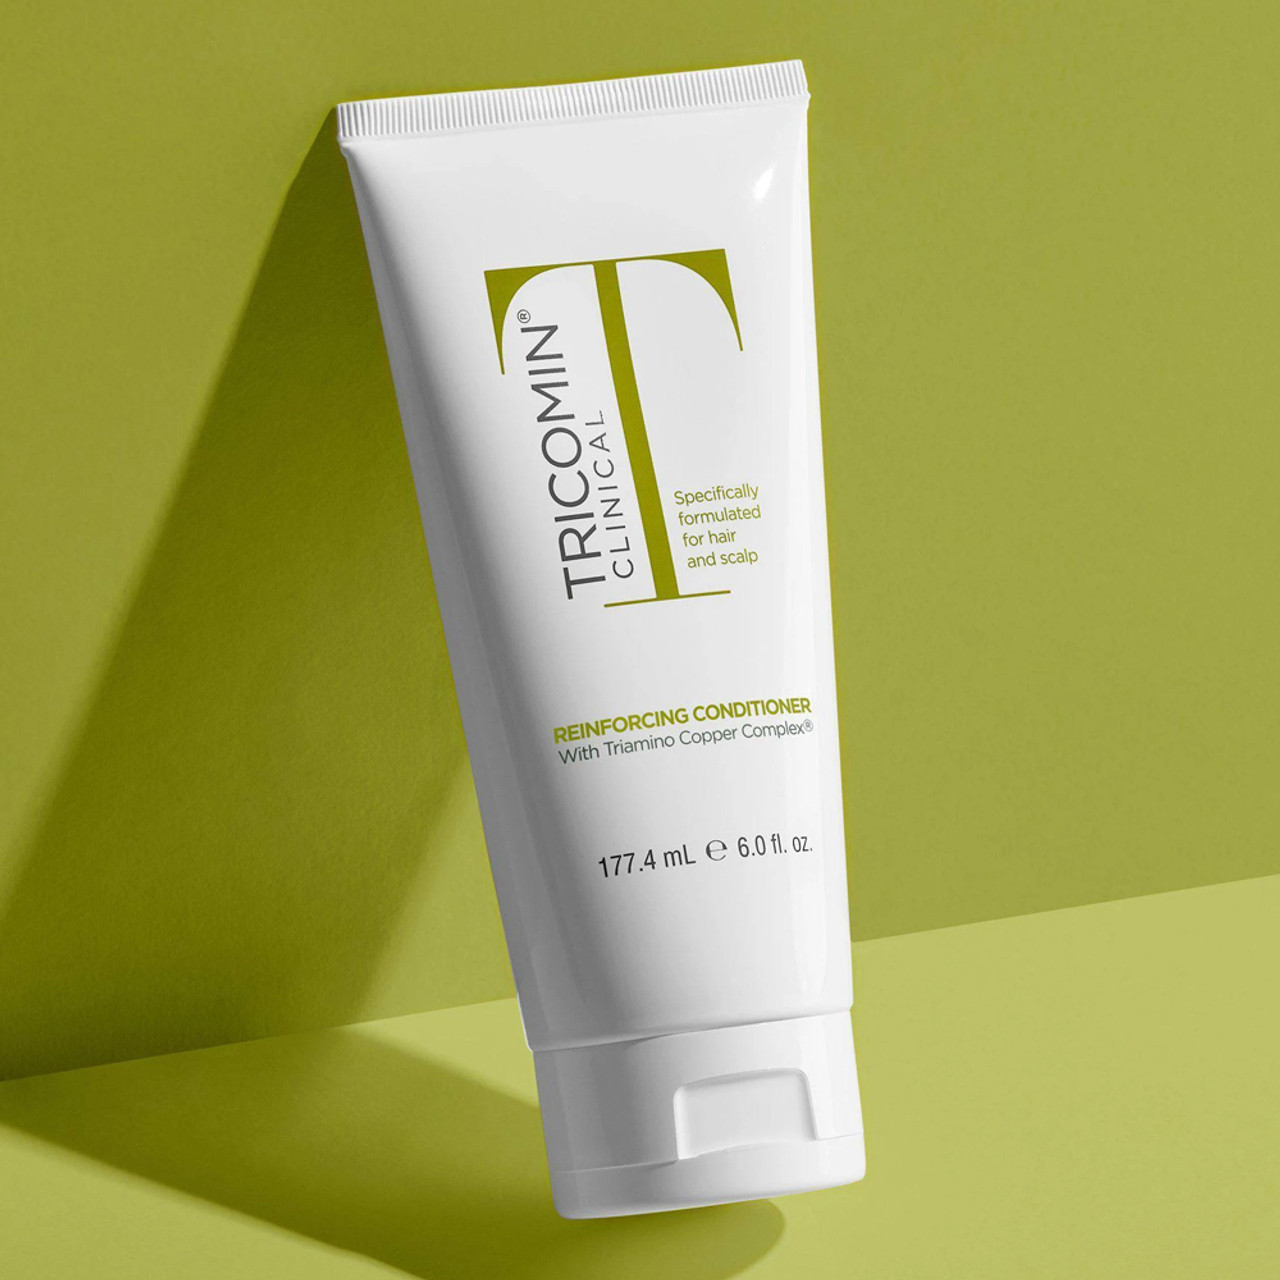 Tricomin Clinical Reinforcing Conditioner